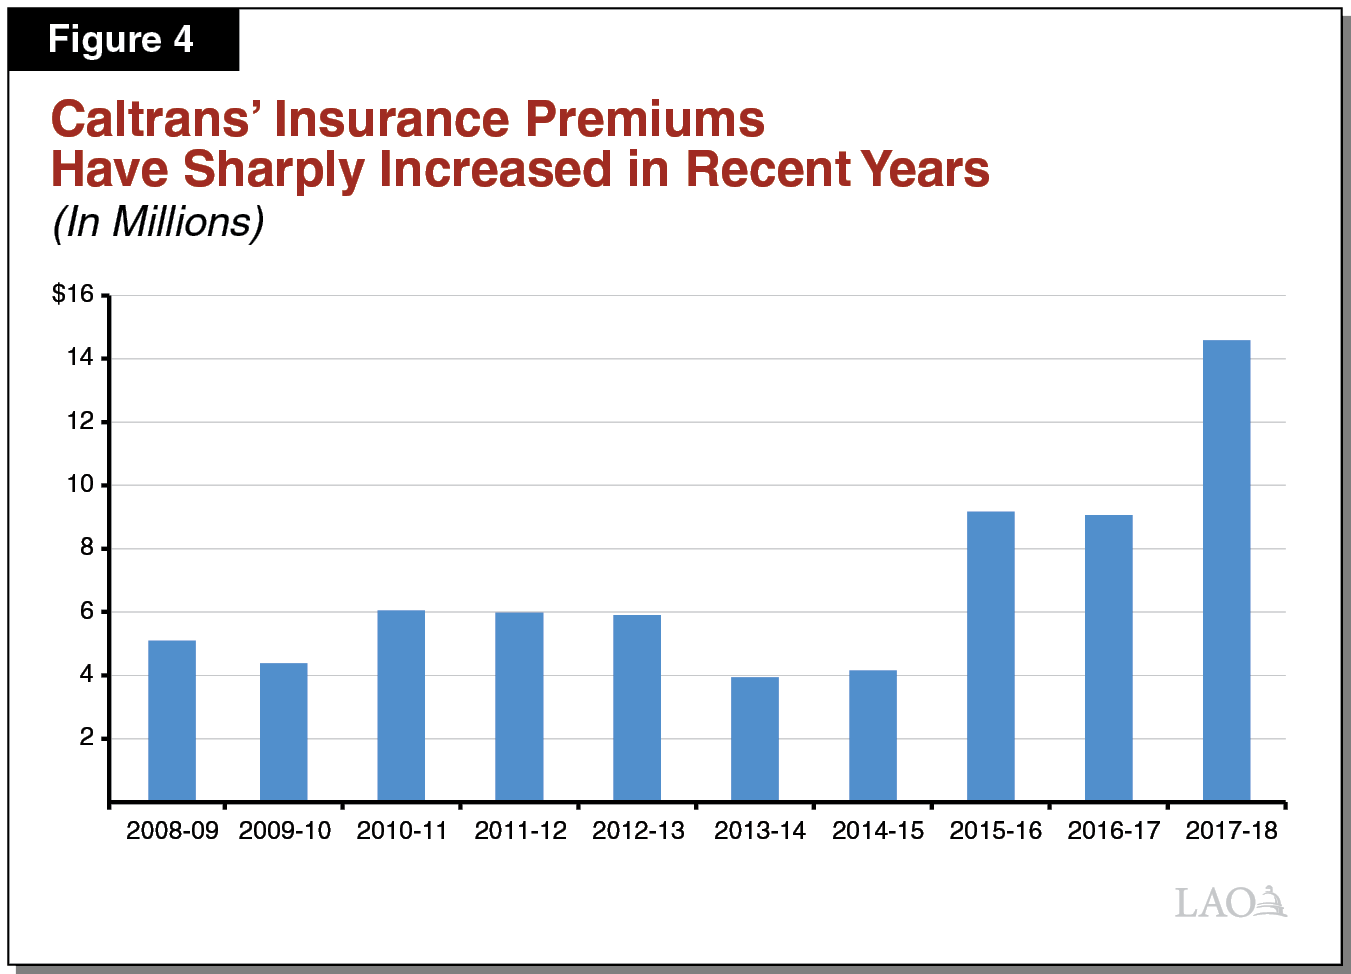 Figure 4 - Caltrans' Insurance Premiums Have Sharply Increased in Recent Years